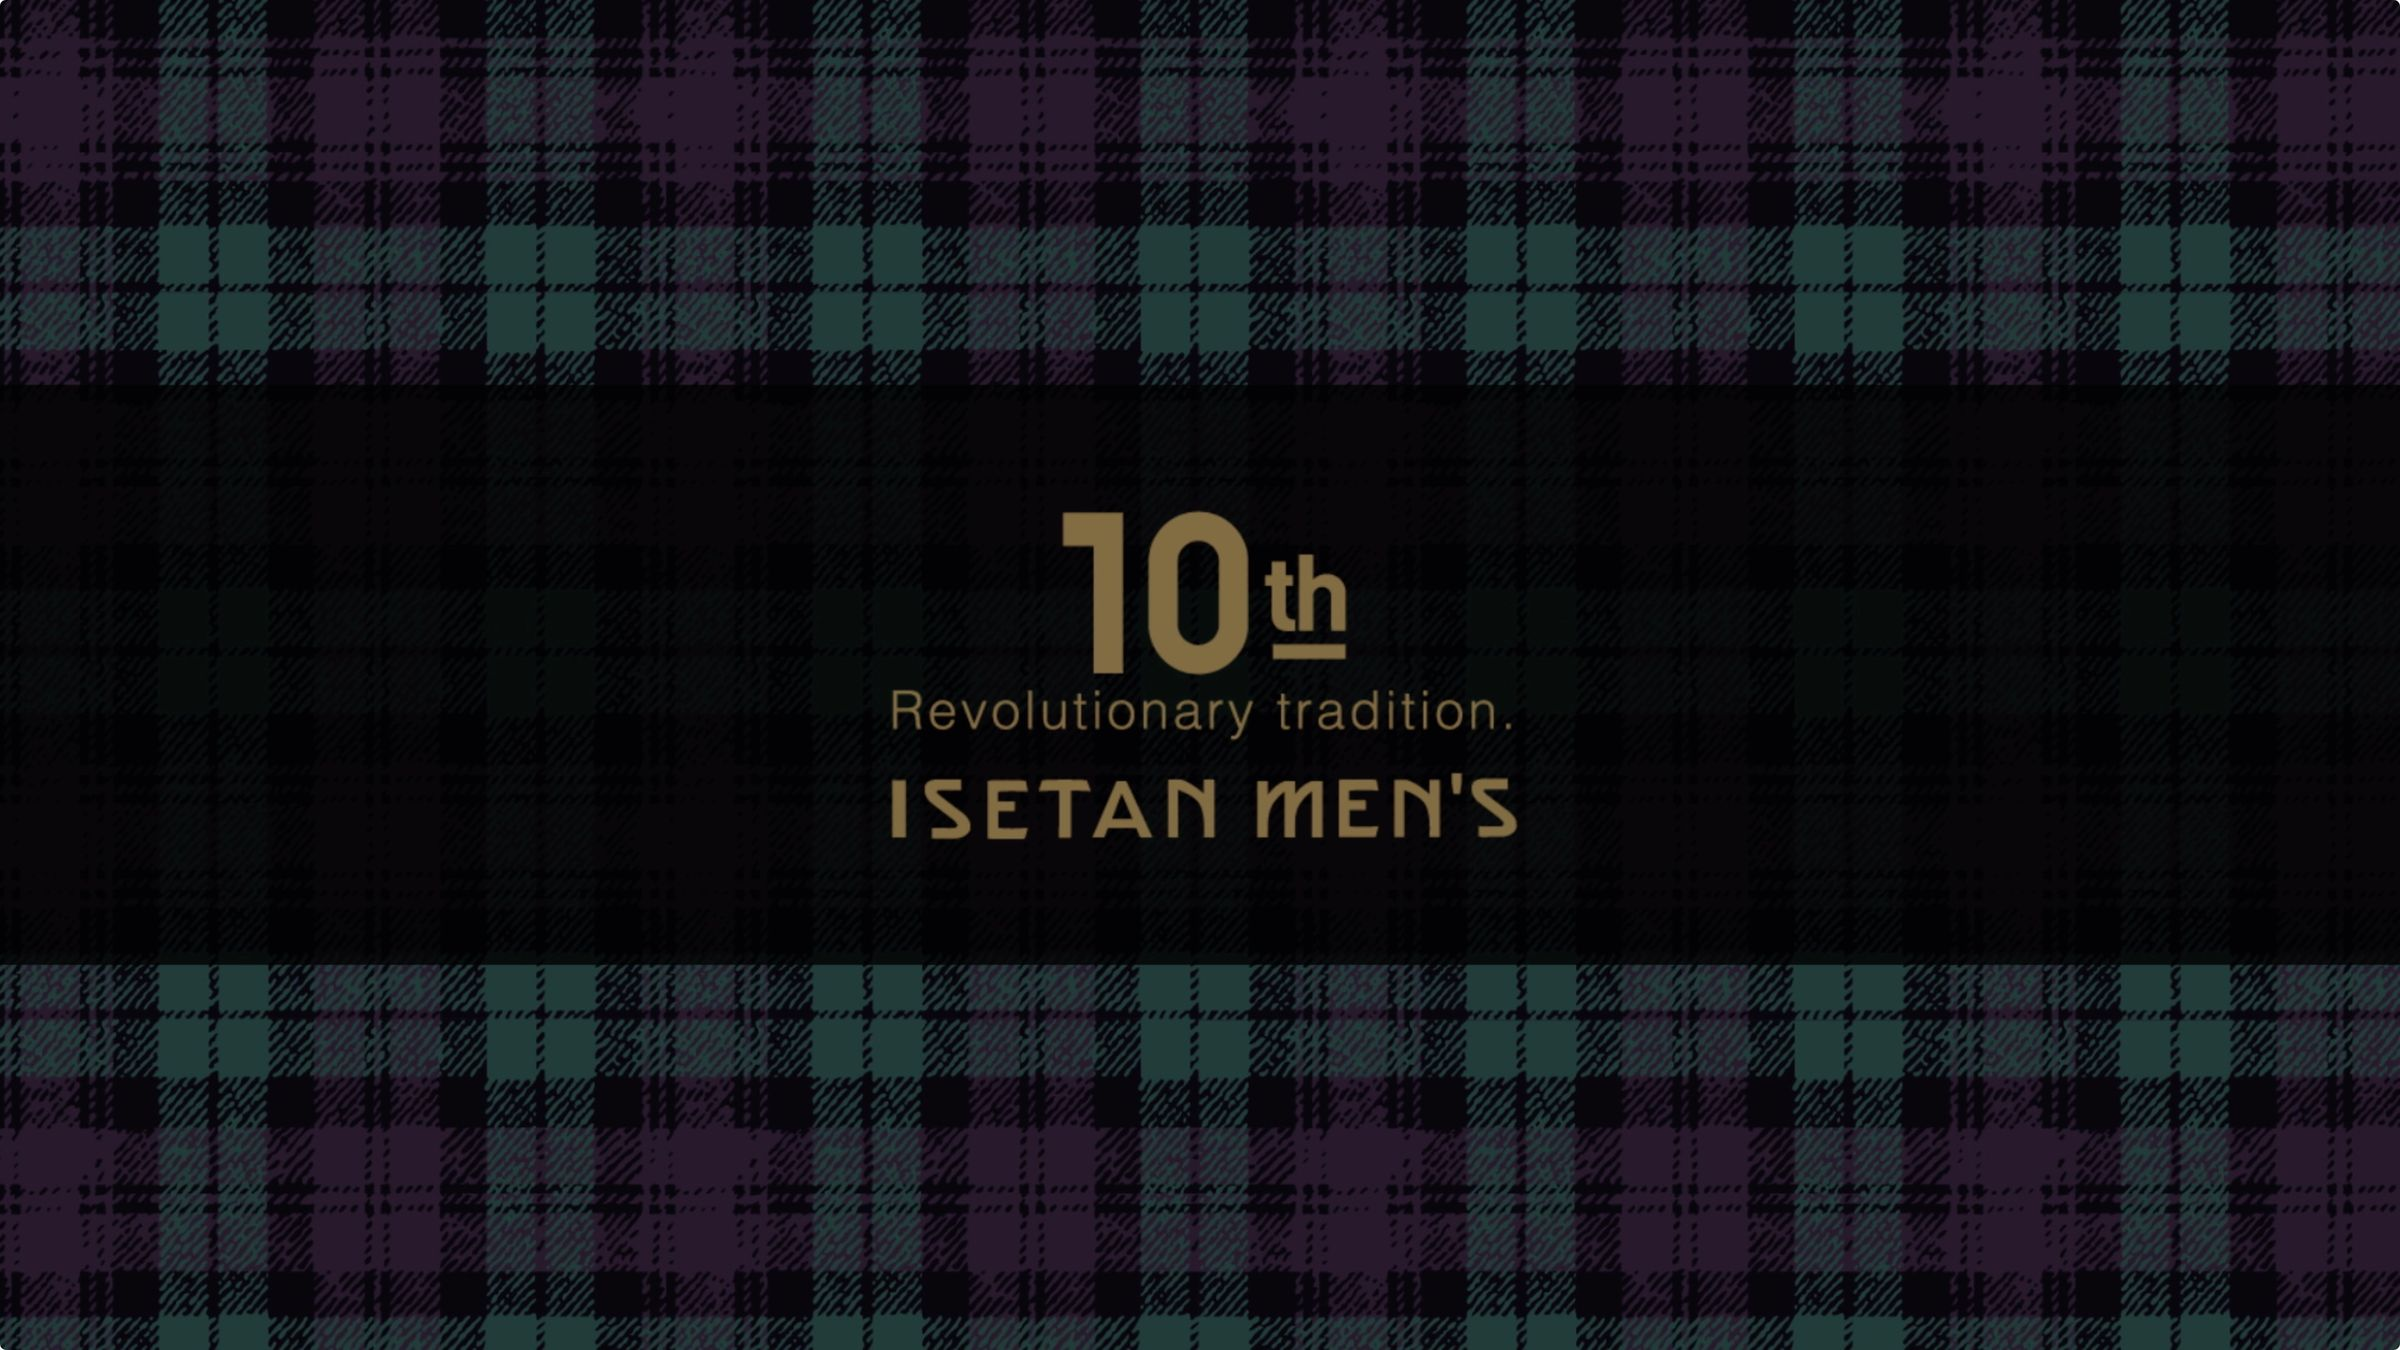 Isetan Men's 10th